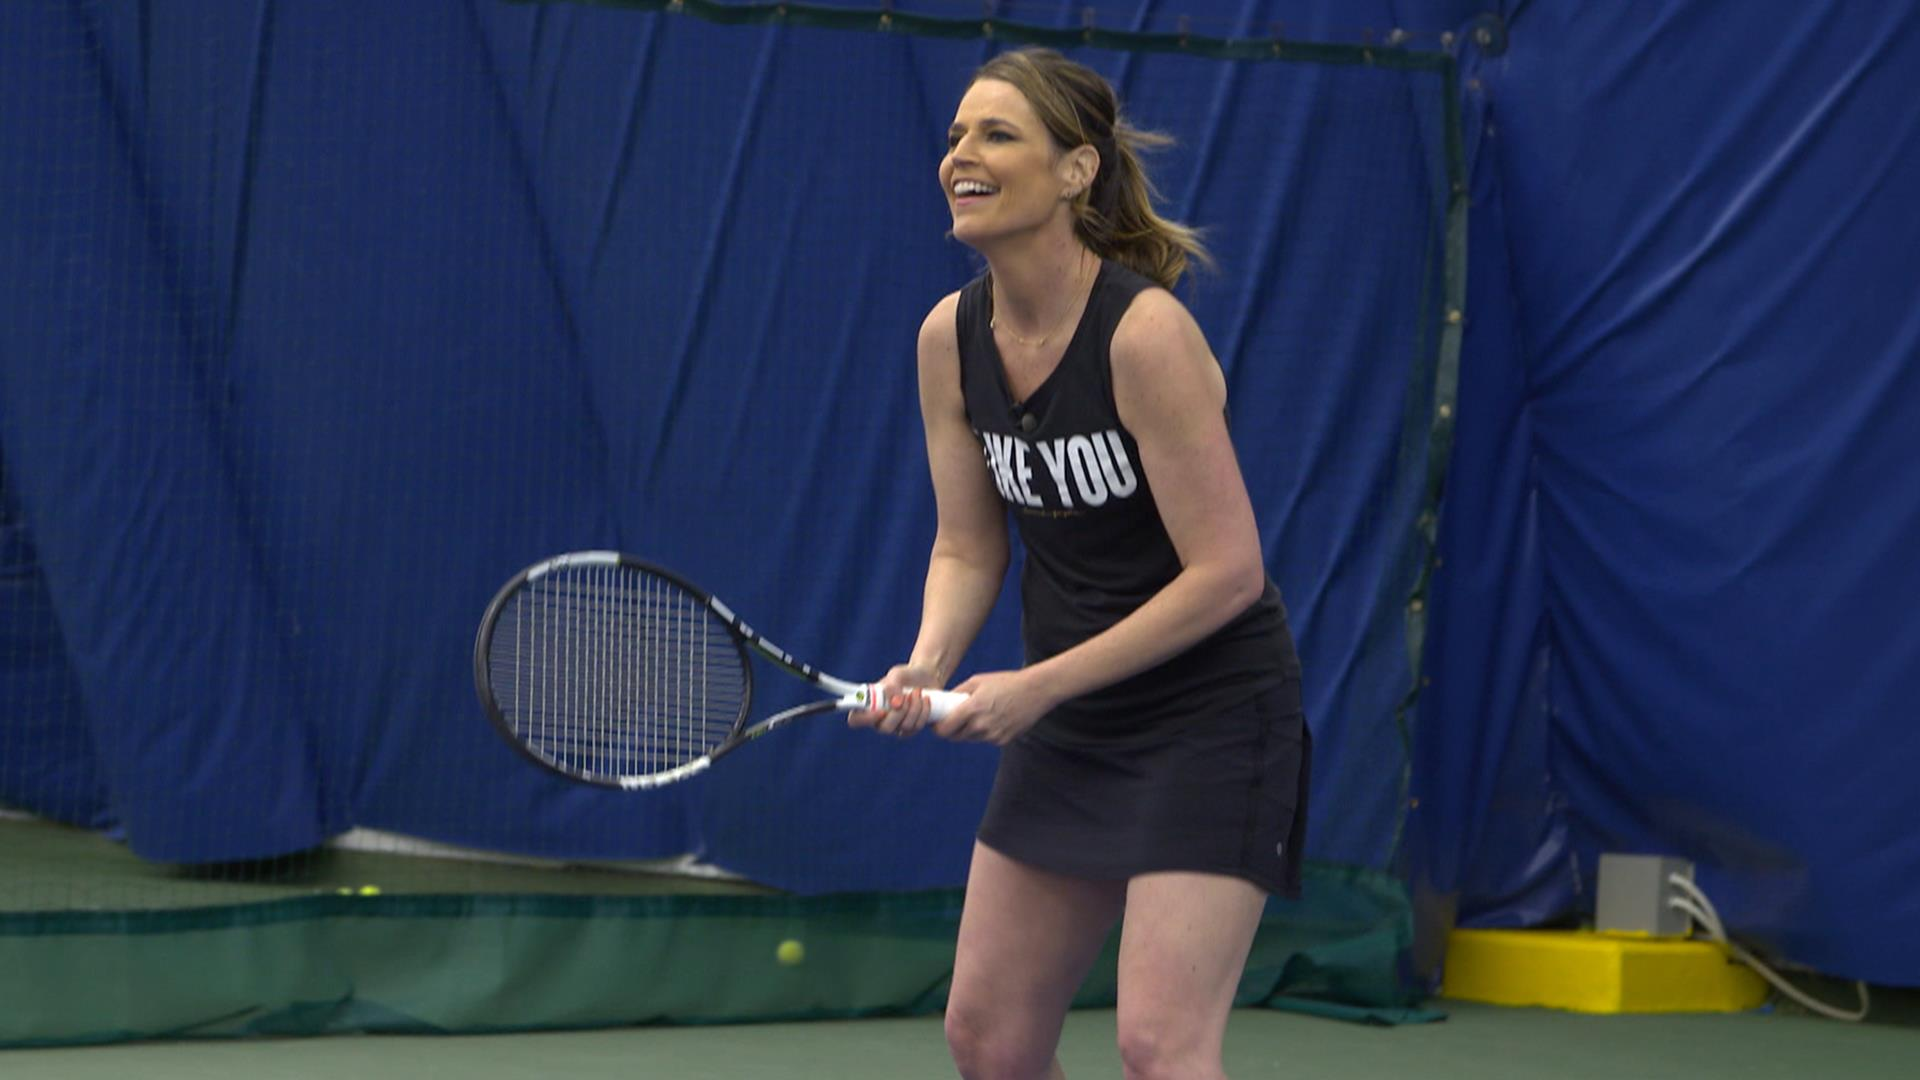 Savannah Guthrie Starts Summer Of Yes With Tennis Lessons